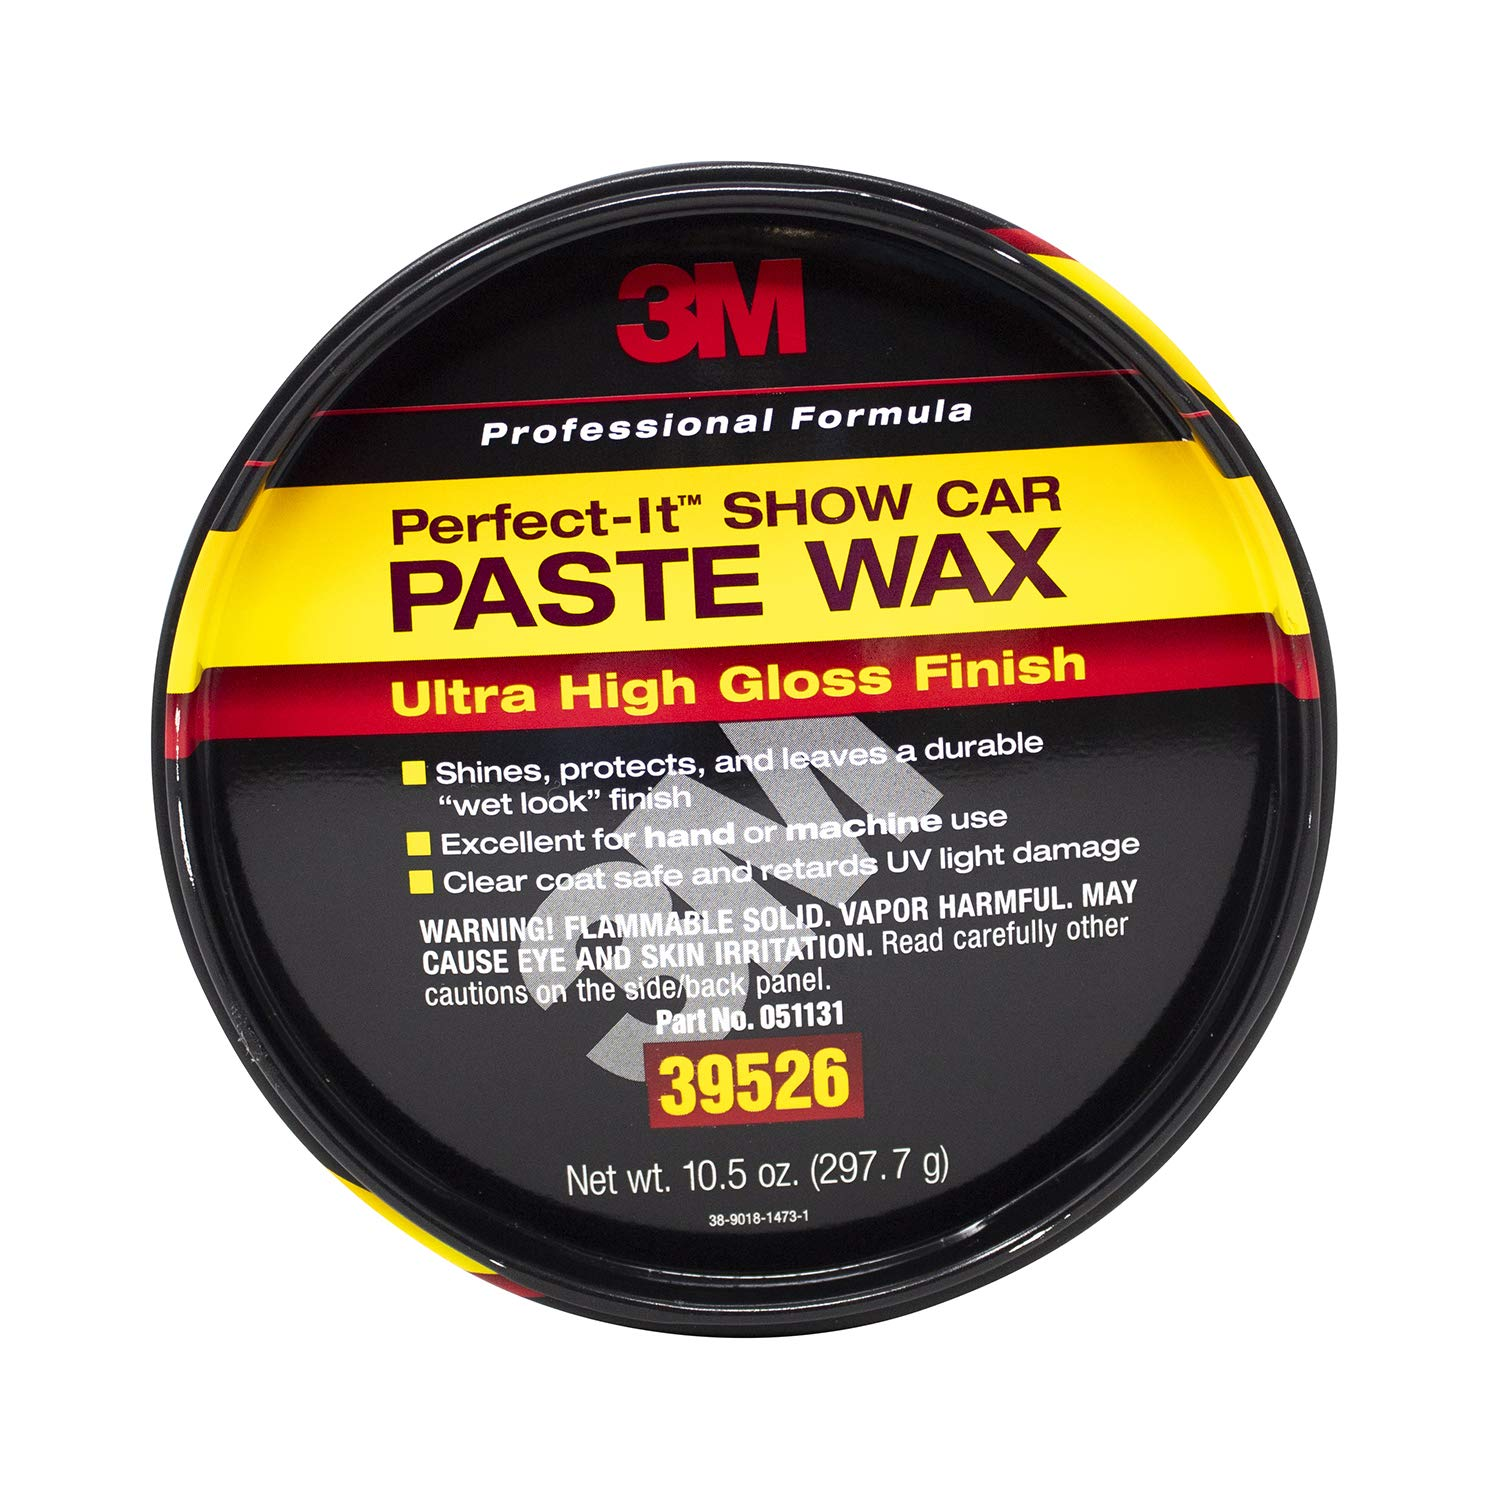 3M Perfect-It Show Car Paste Wax}